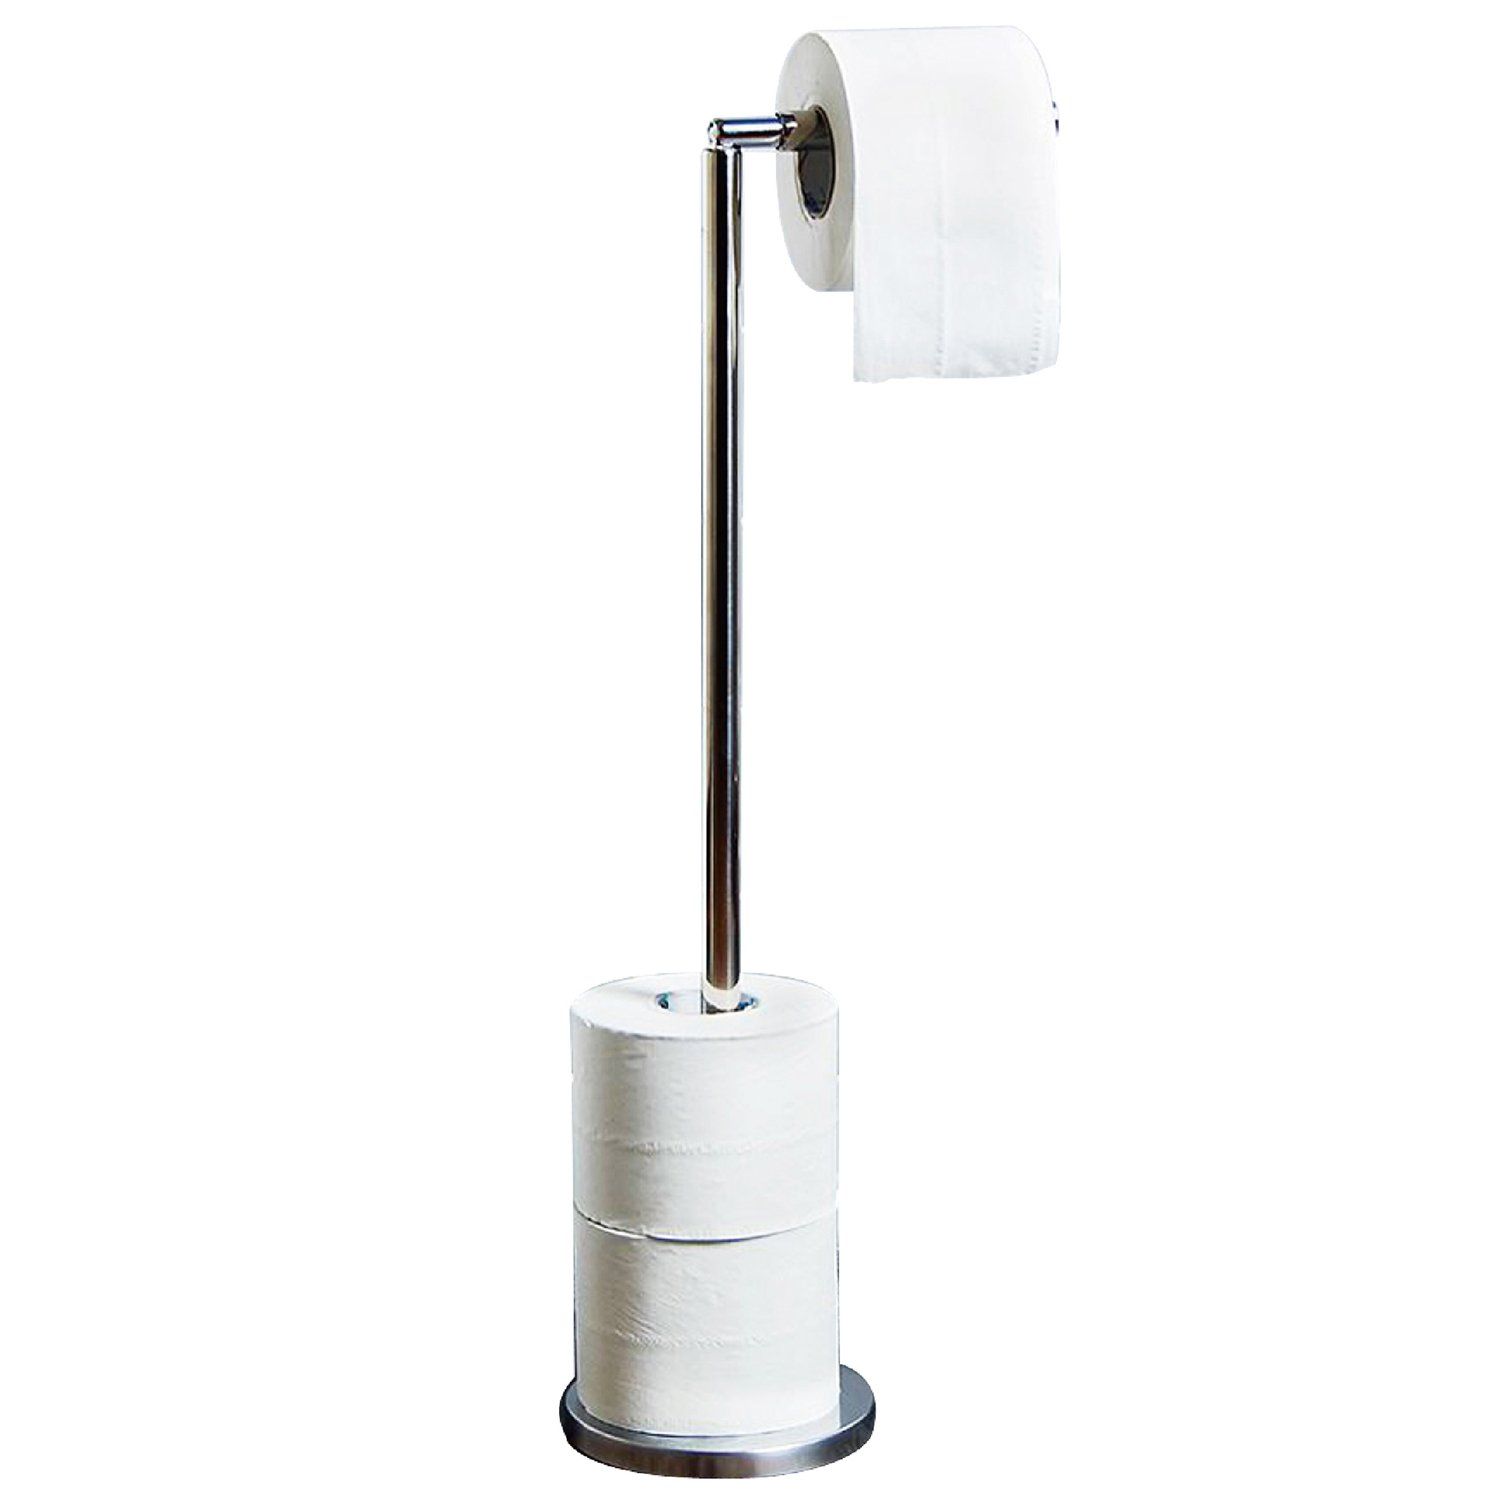 Crystals 2 in 1 Stainless Steel 4 Paper Roll Free Standing with Heavy Duty Base Bathroom Toilet Roll Holder Dispenser